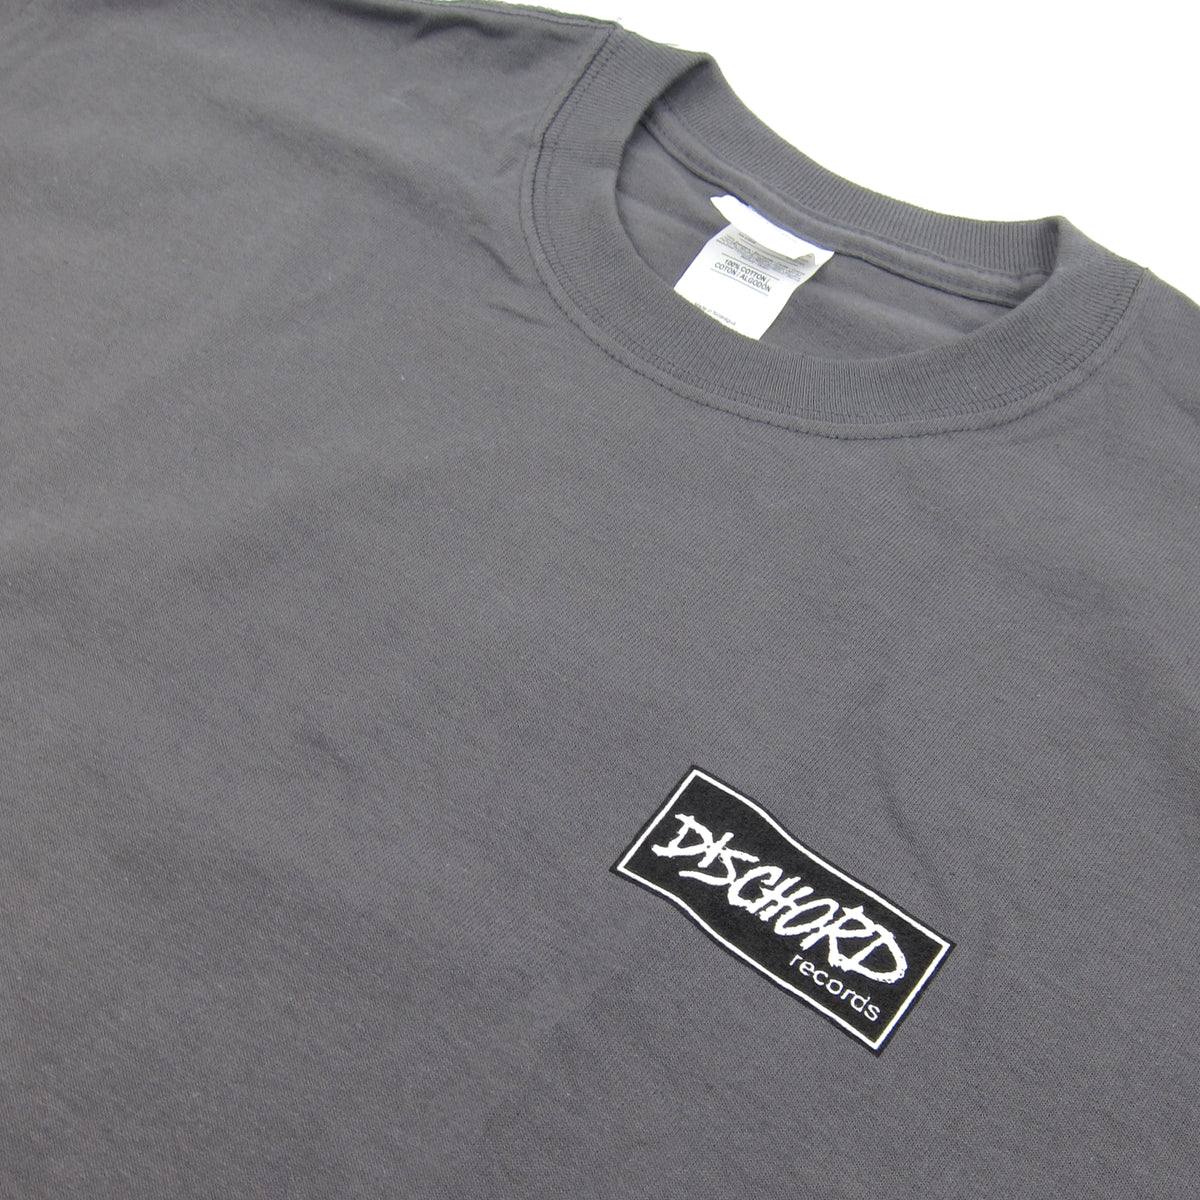 Dischord Records: Box Logo Shirt - Charcoal